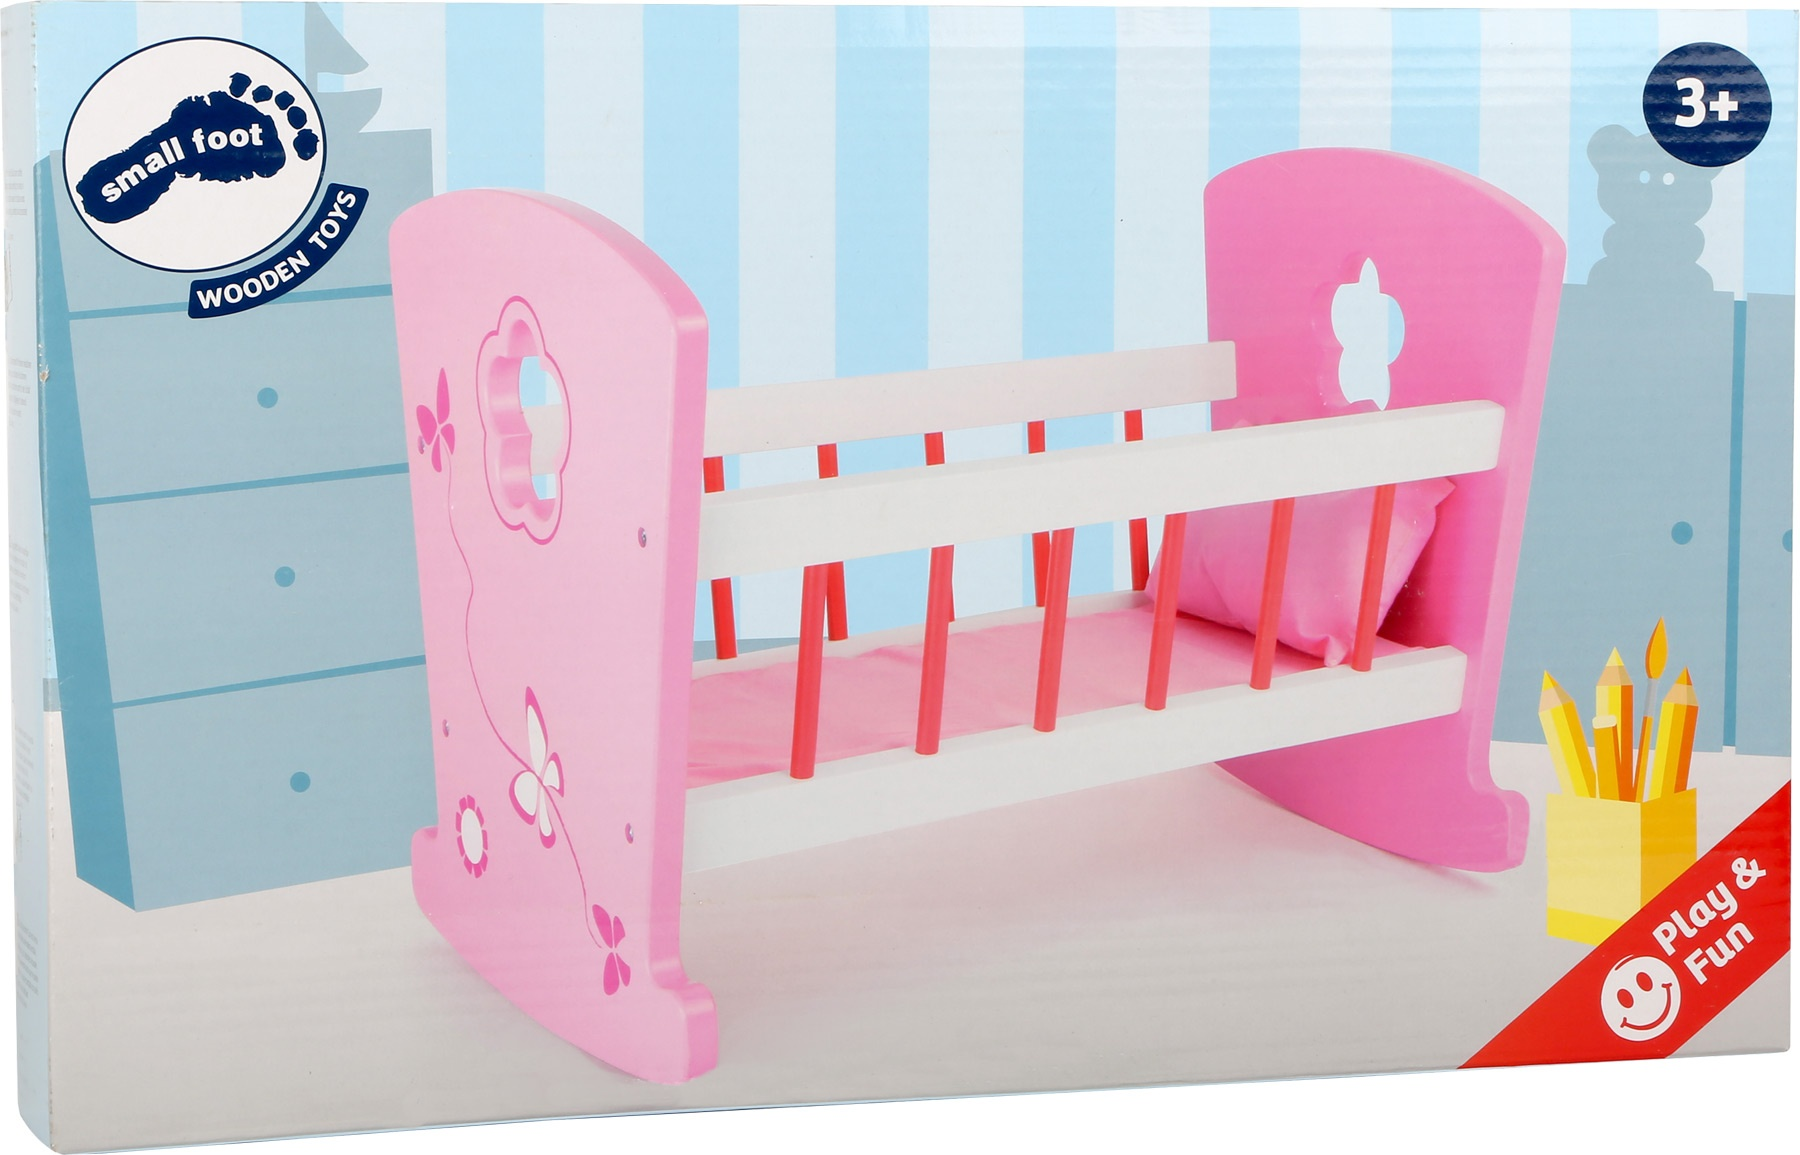 Baby Schommel Bed.Small Foot Dolls Swing Bed Wood Pink 46 X 28 X 34 Cm Internet Toys